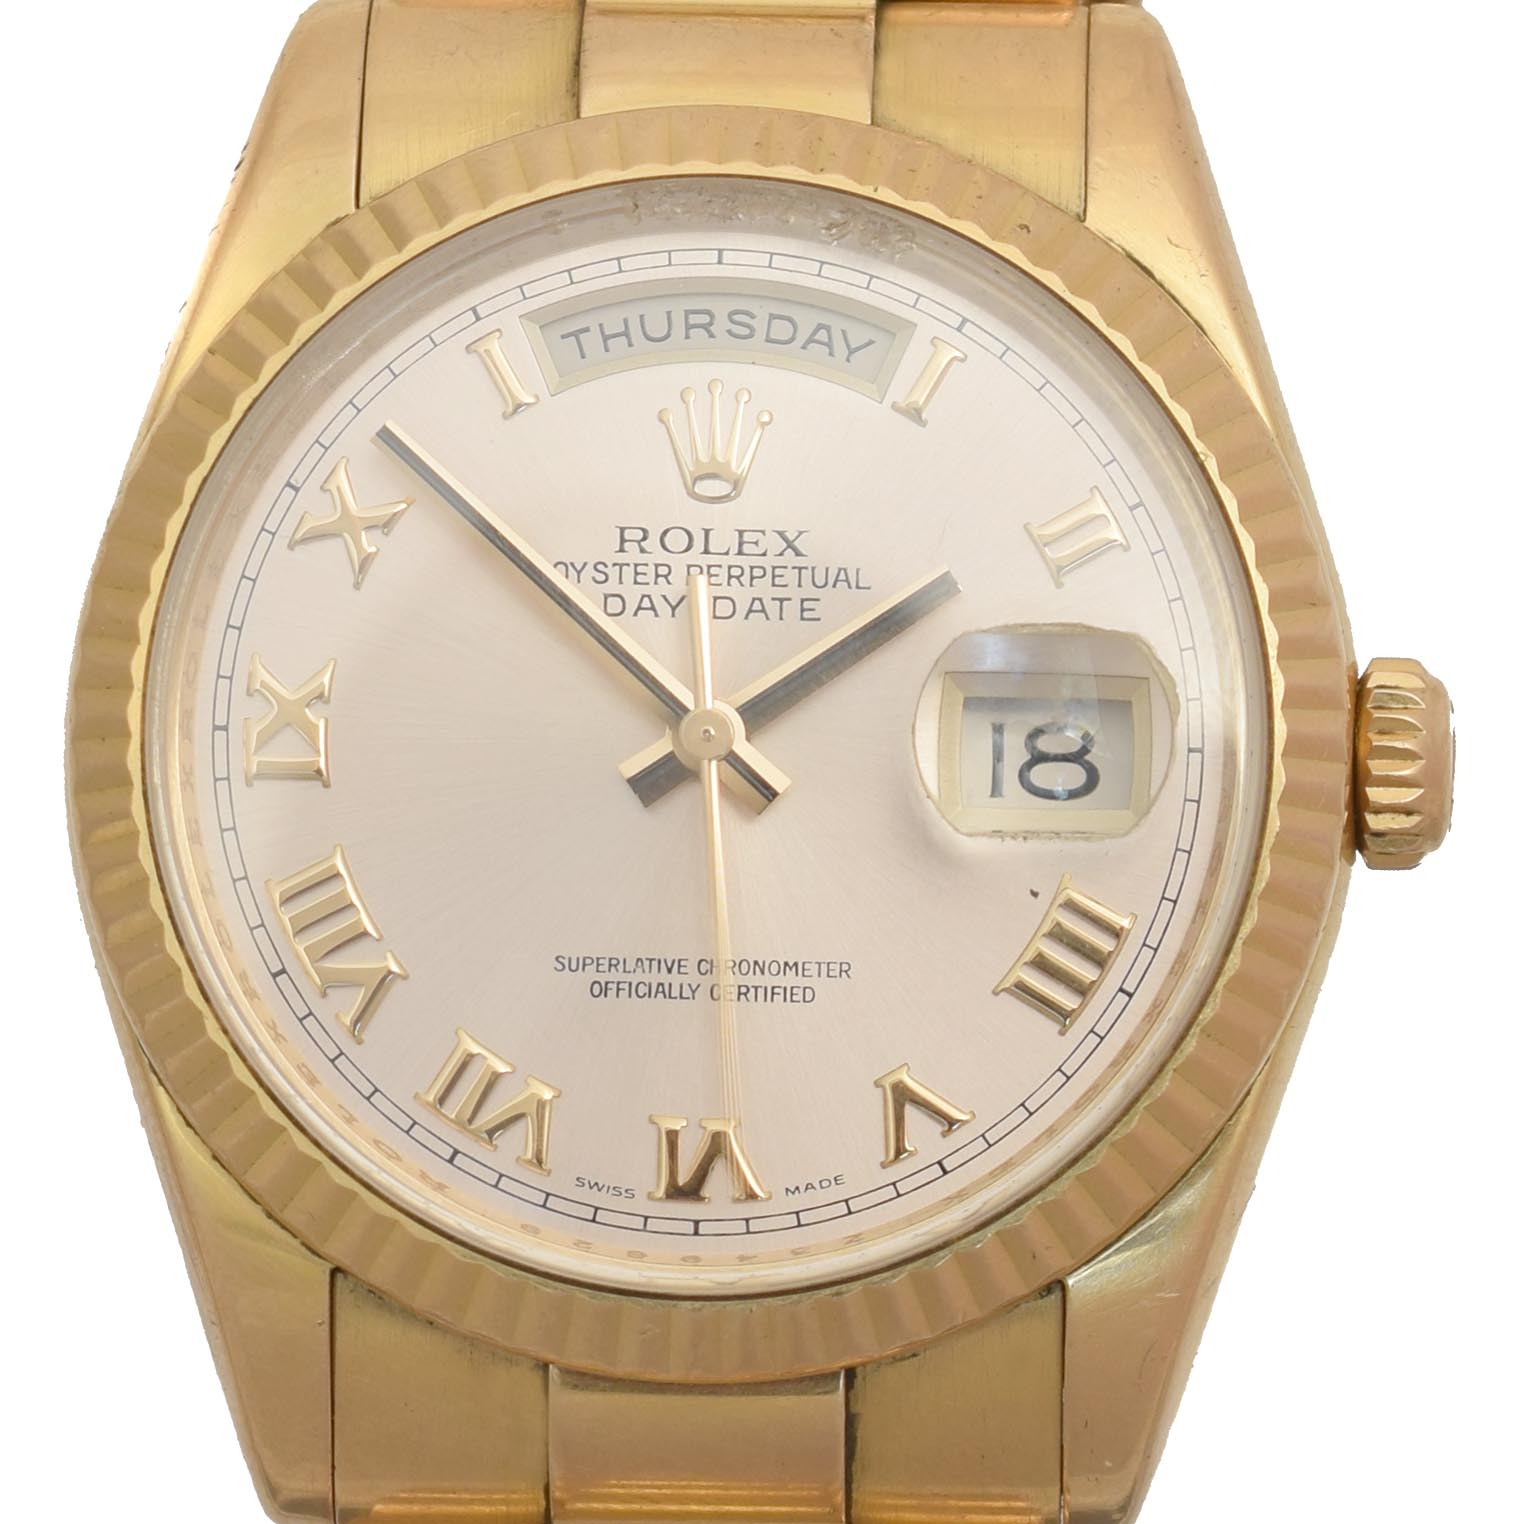 A gents 18ct gold Rolex Oyster Perpetual Day-Date wristwatch, circa 2006-7, the circular signed dial with Roman numeral hour markers, date aperture to 3 and day aperture to 12, with fluted bezel and president bracelet, model no. 118235, Z349629, Swiss assay marks, case diameter 36mm, with single spare link and papers. Sold for £8,540